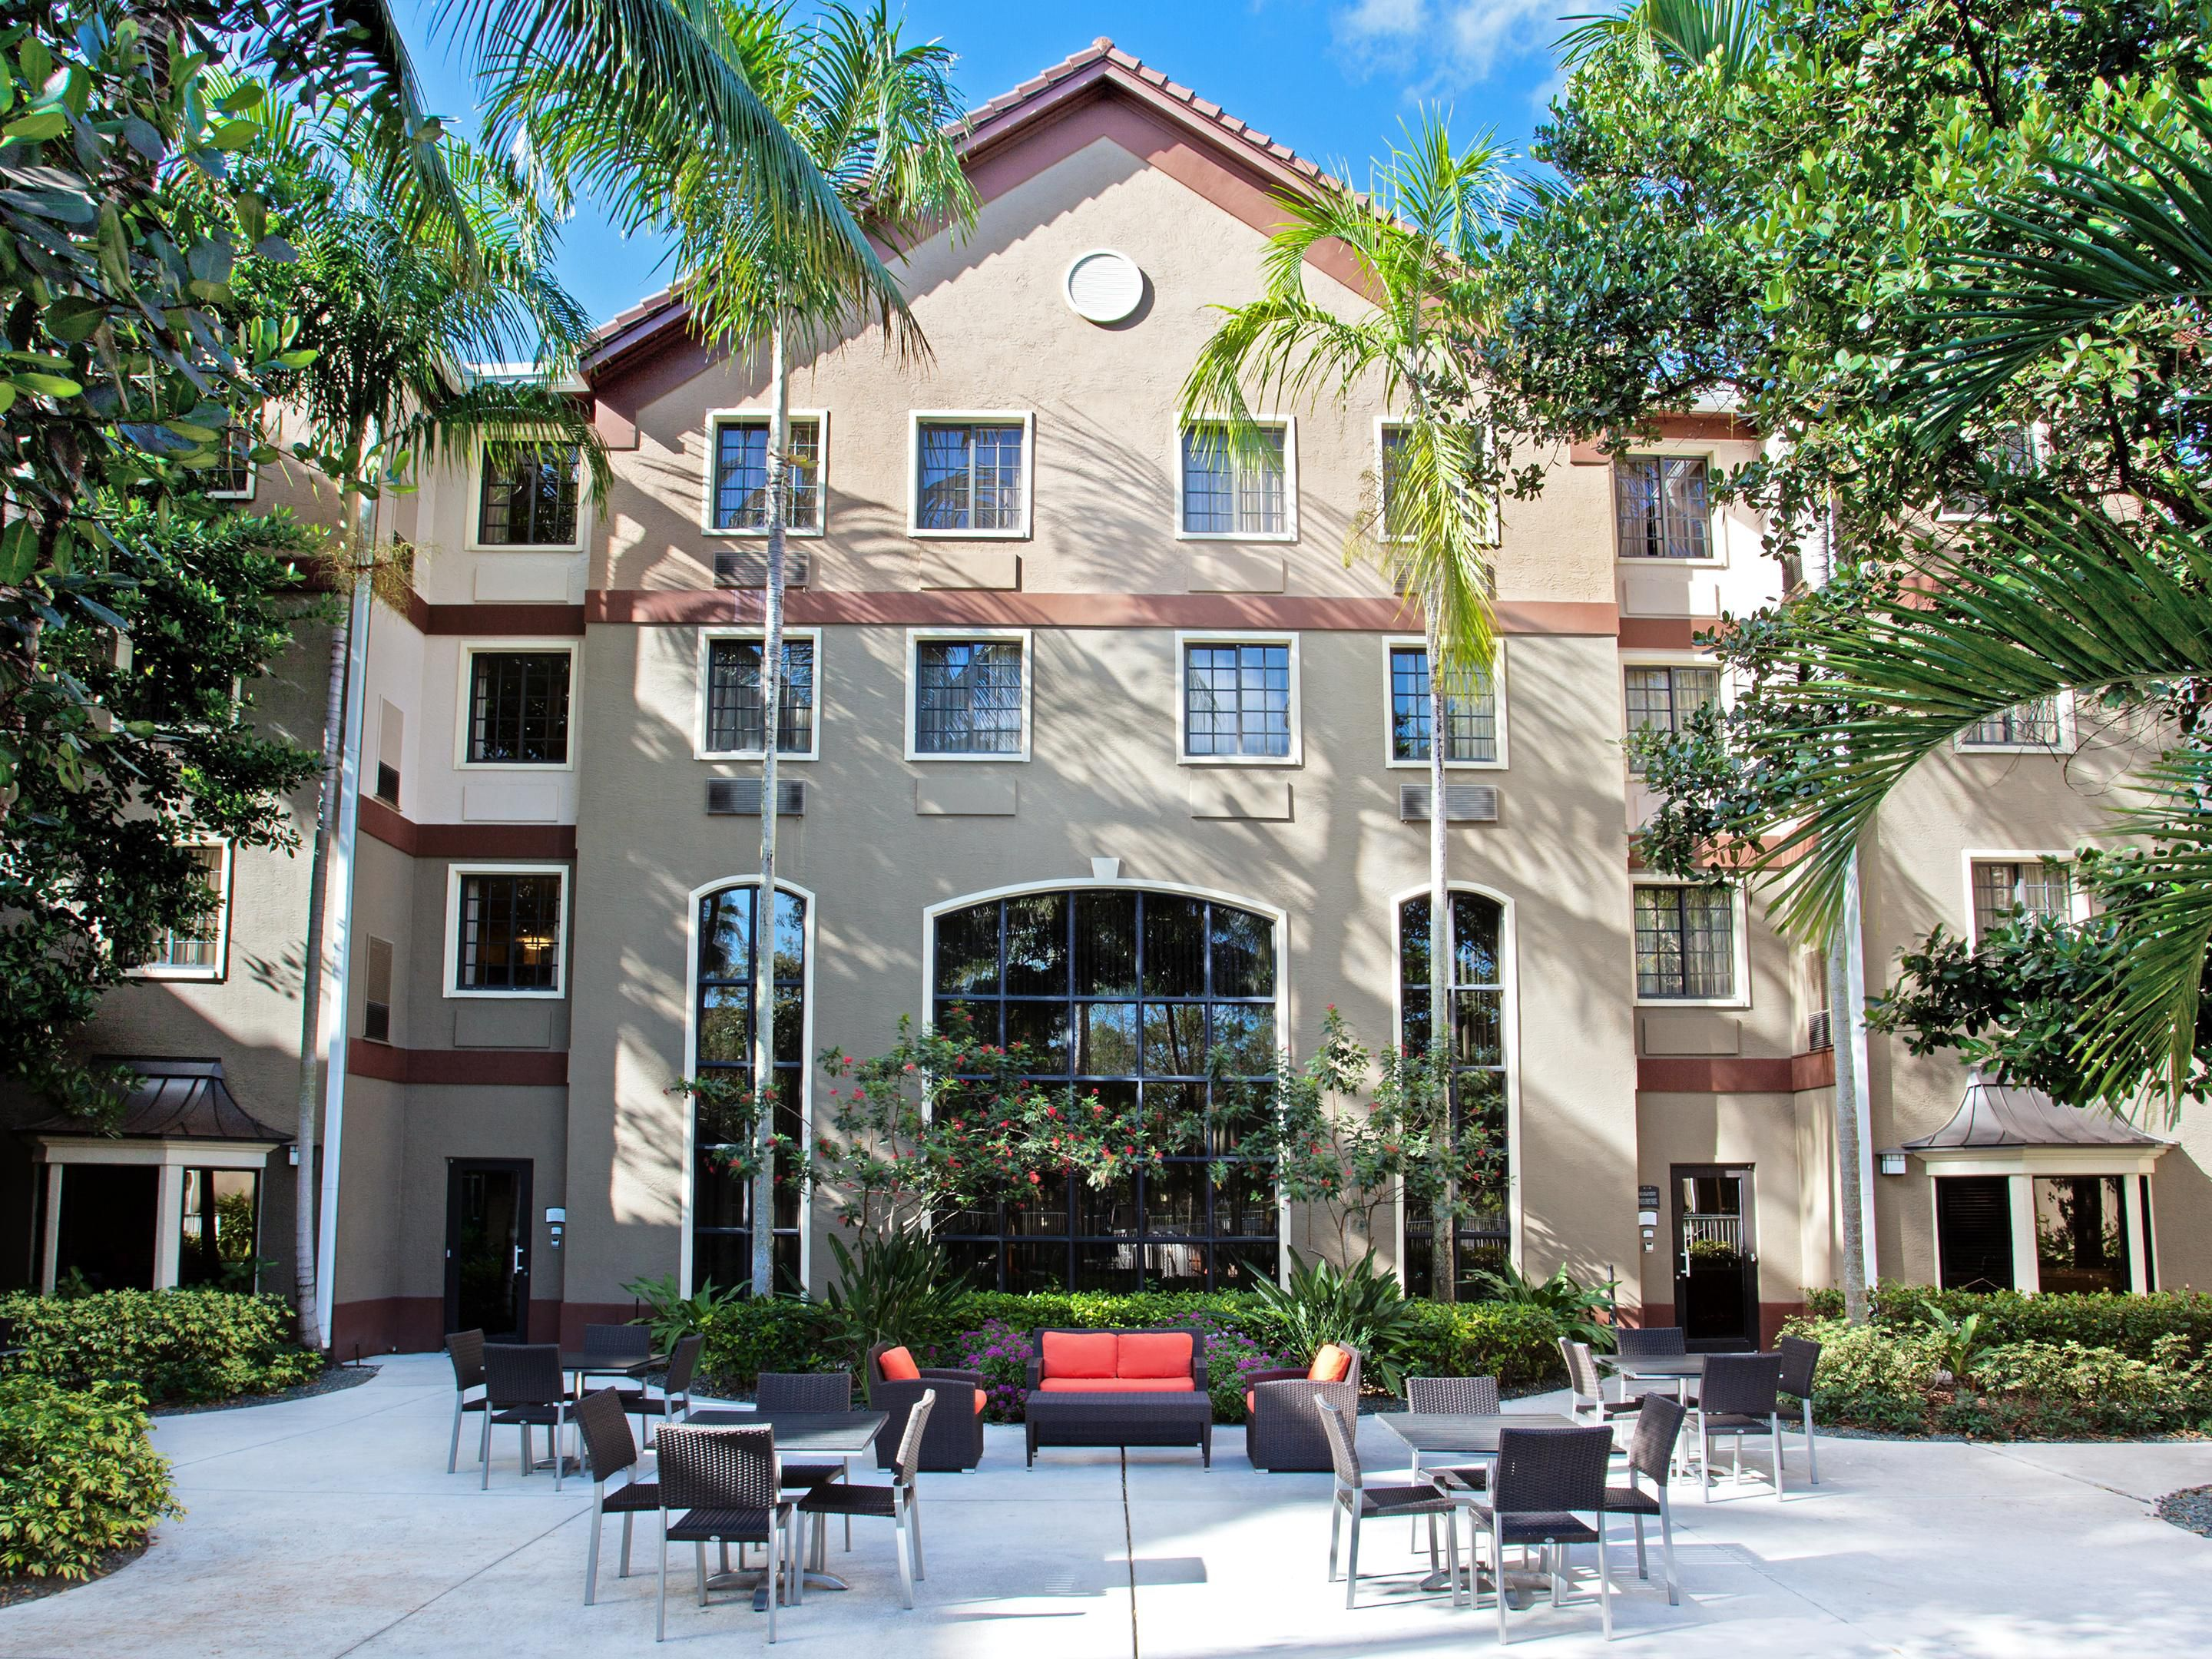 Two bedroom suites ft lauderdale florida home plan 2 bedroom suites in fort lauderdale